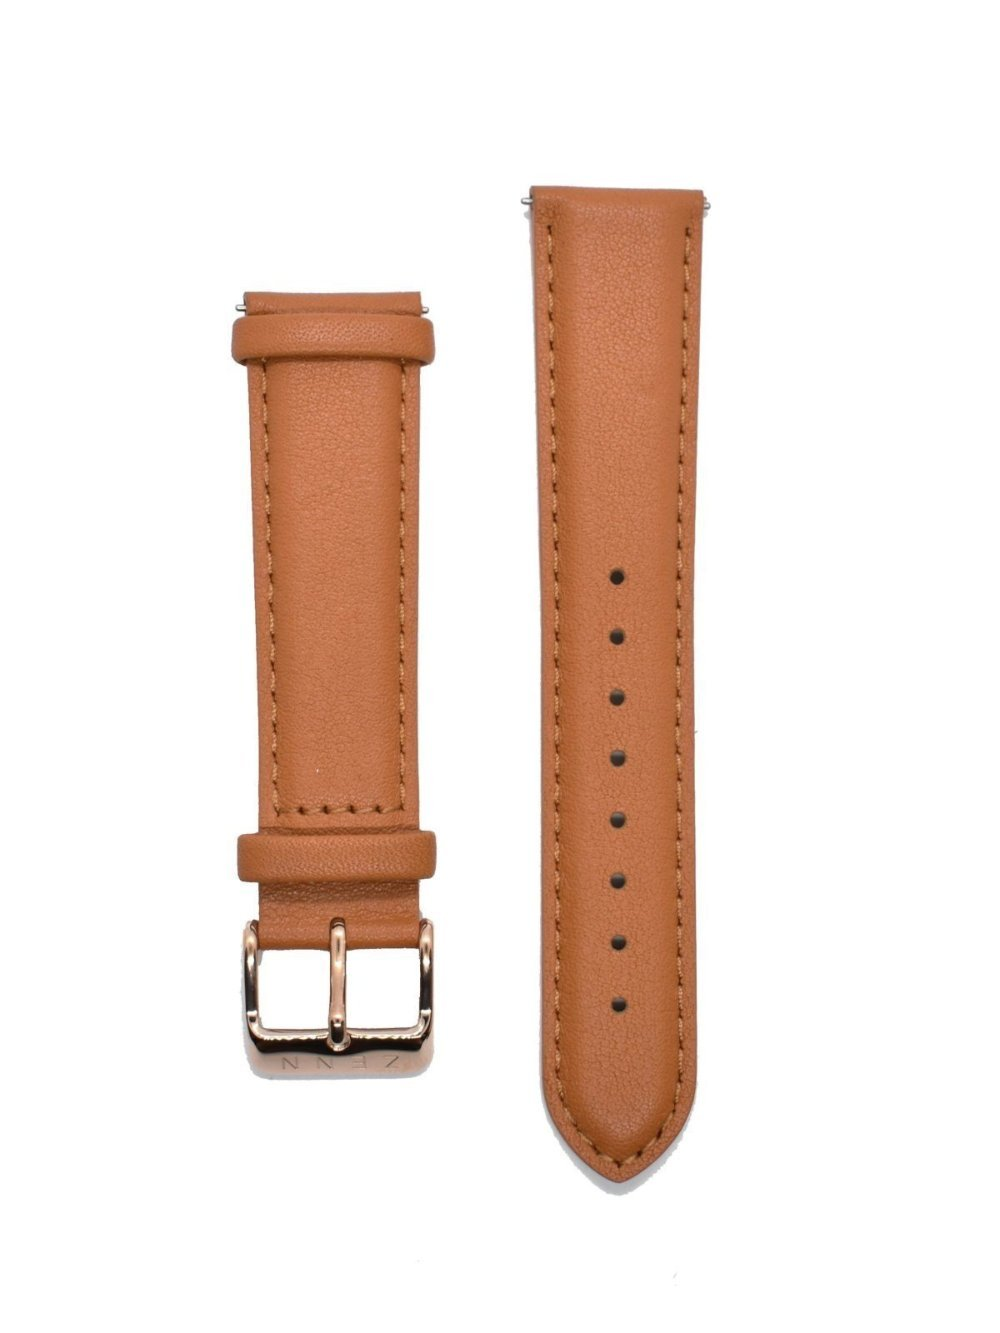 Classique Tan Leather Strap - Vanessa Stylez Boutique